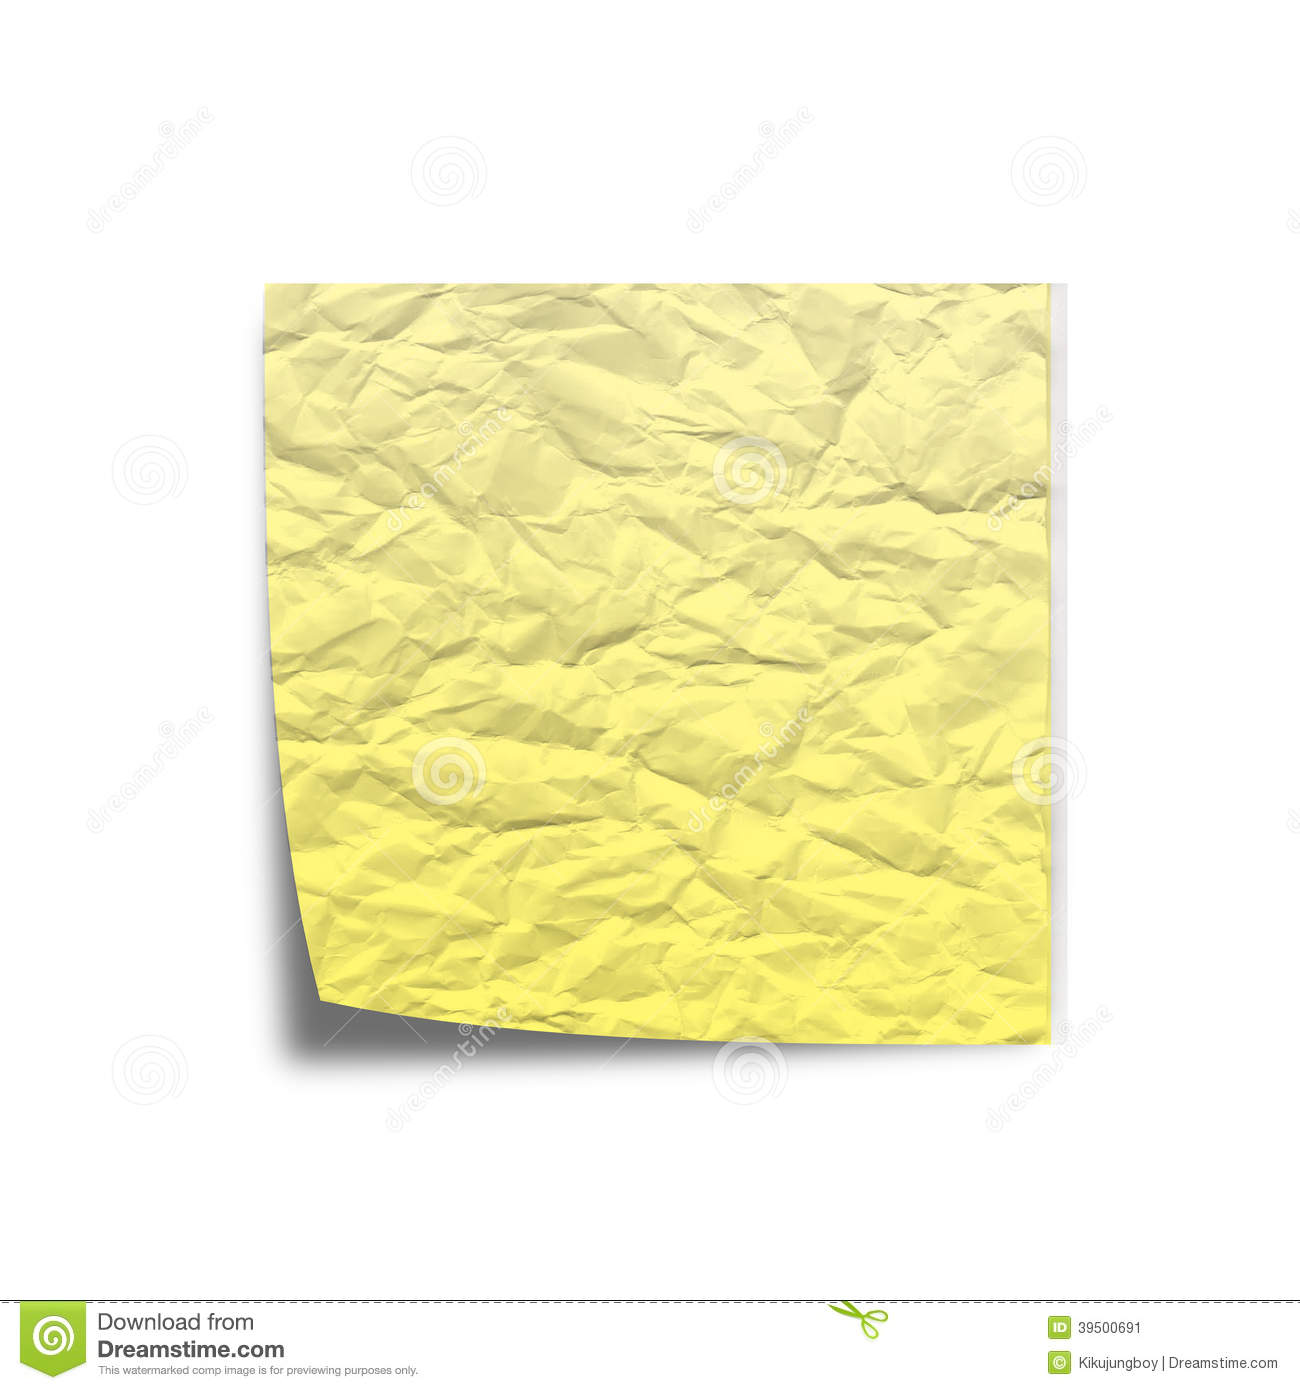 Scratchy Note paper on white back ground